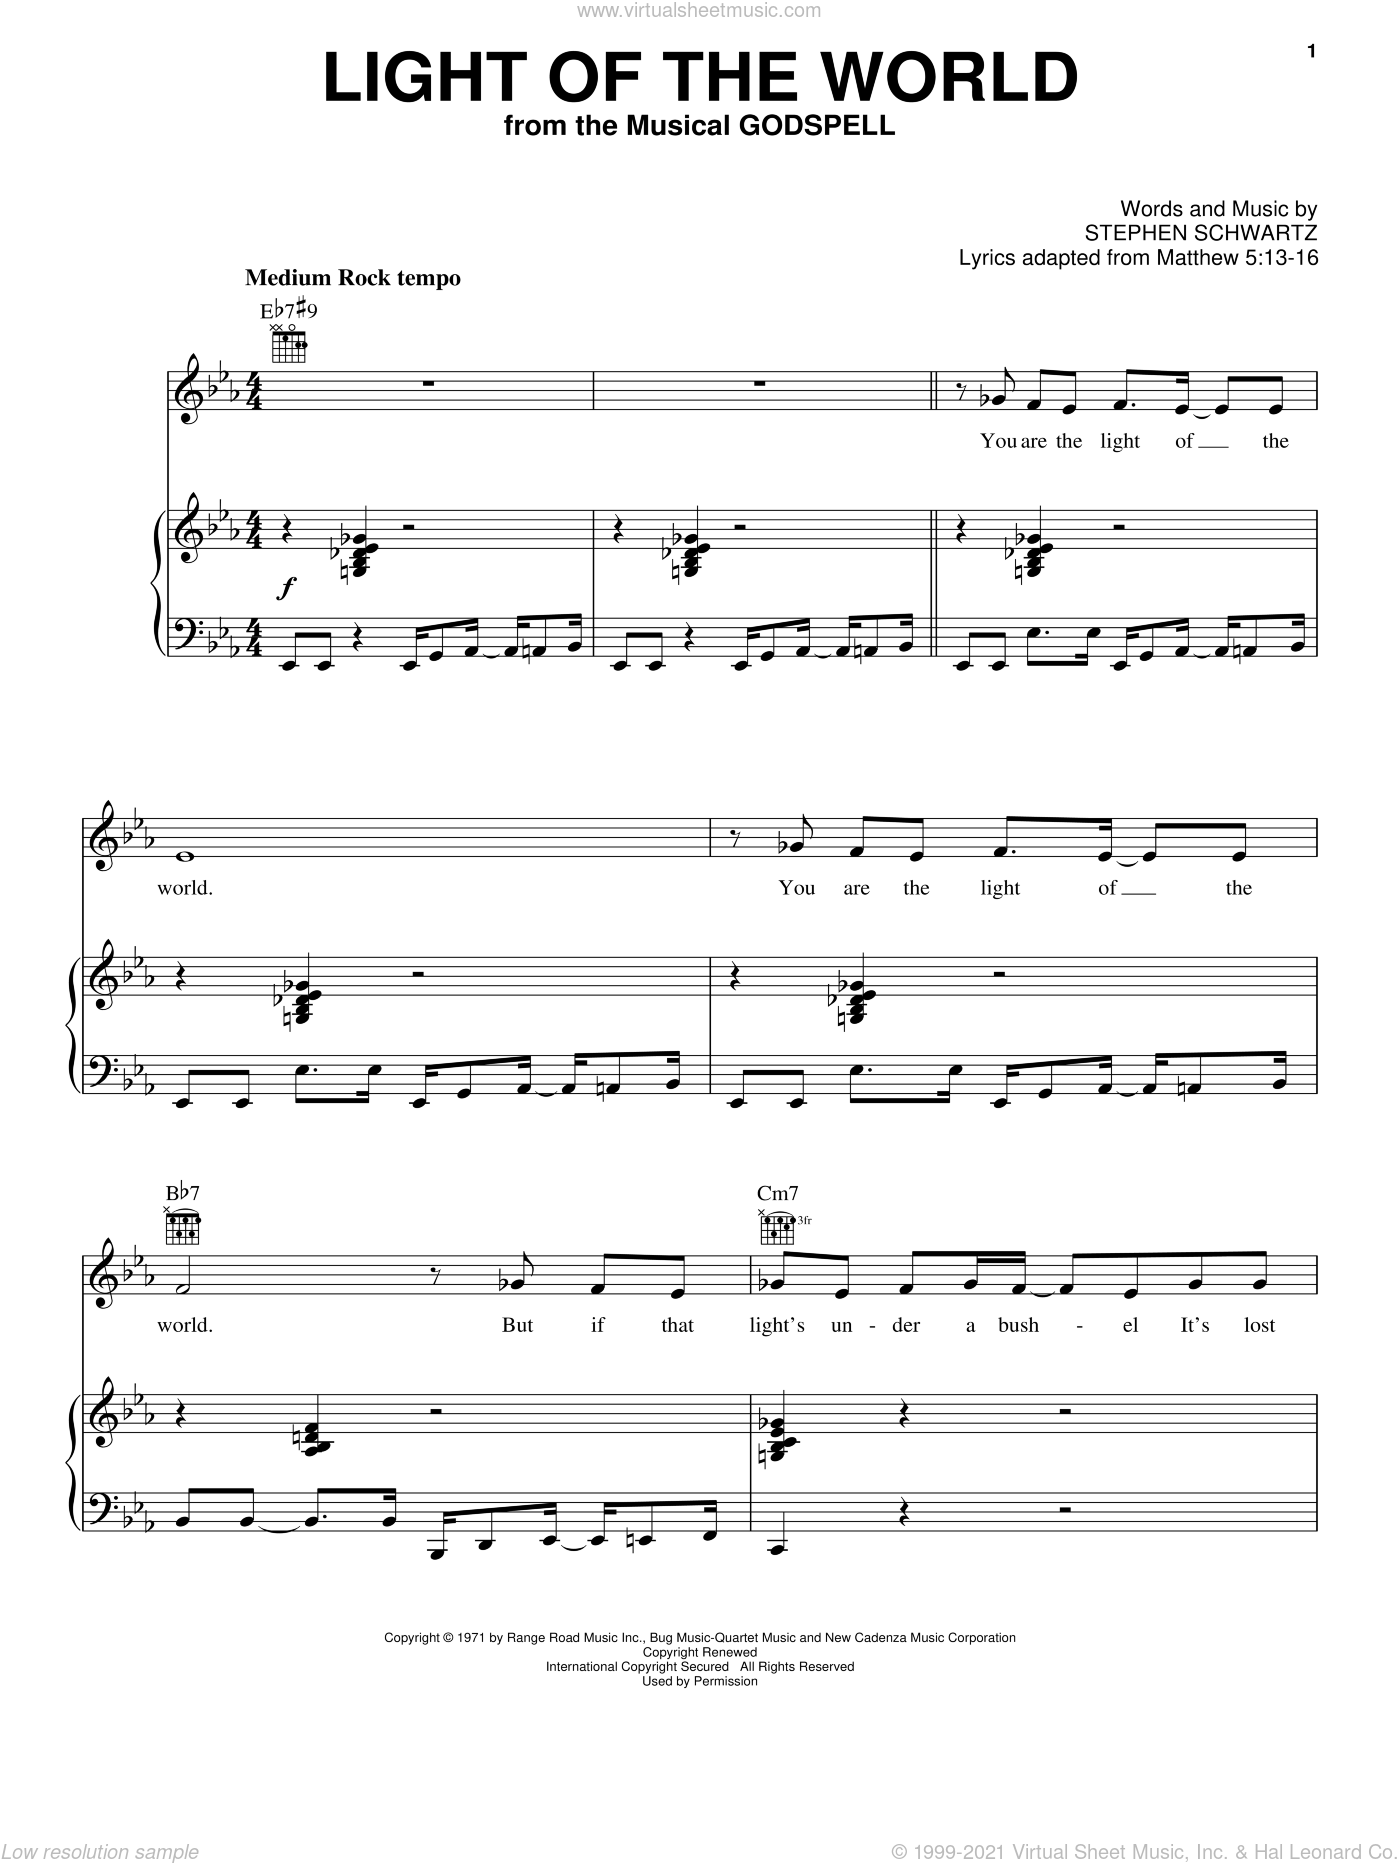 Light Of The World sheet music for voice, piano or guitar by Stephen Schwartz. Score Image Preview.